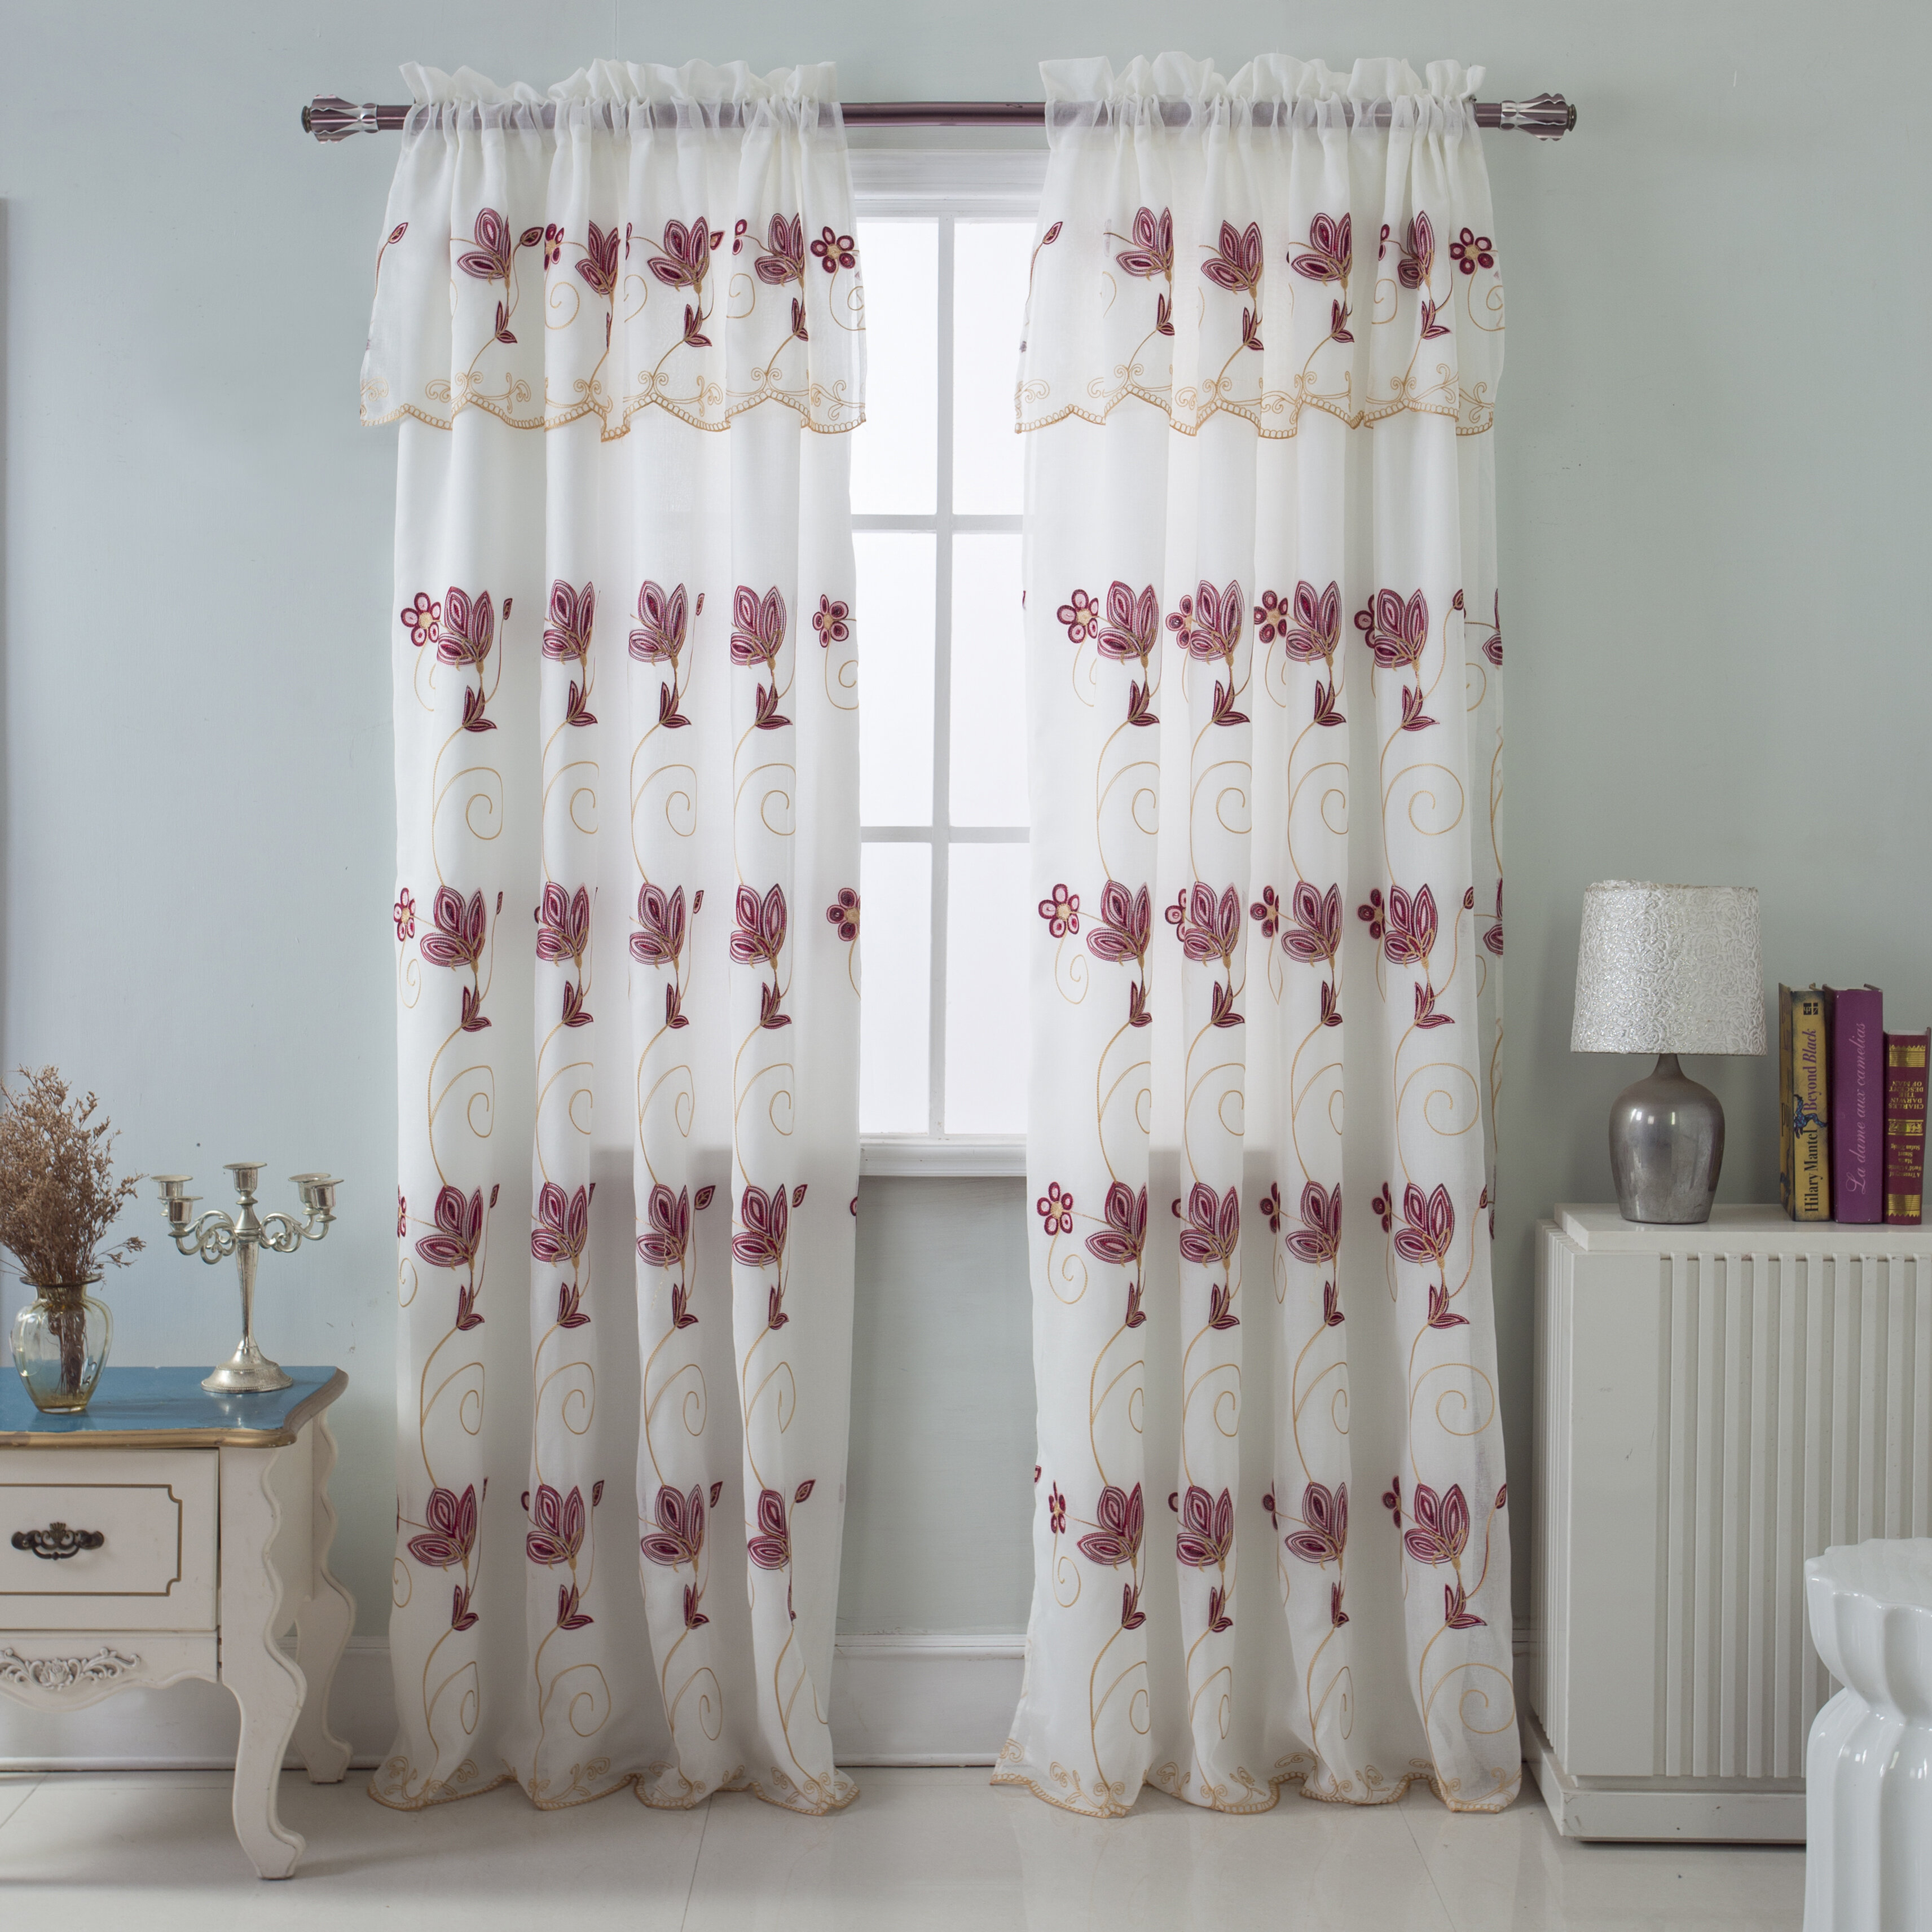 Harpenden Embroidered Satin Layered Floral/flower Semi Sheer Rod Pocket Single Curtain Panel Pertaining To Ombre Embroidery Curtain Panels (View 20 of 20)